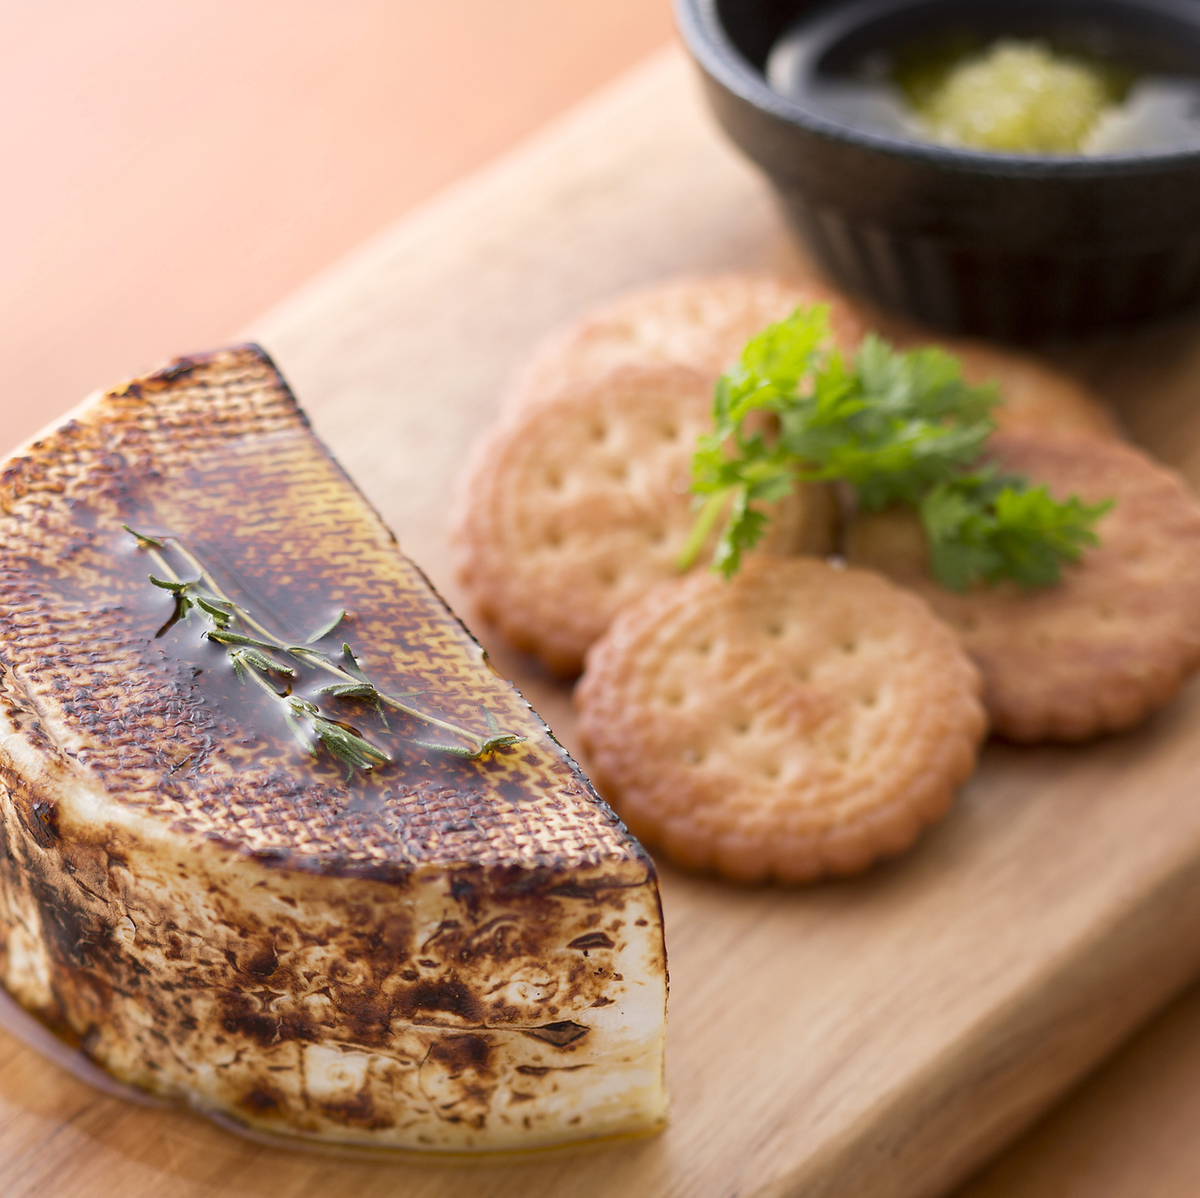 Straw-grilled camembert cheese